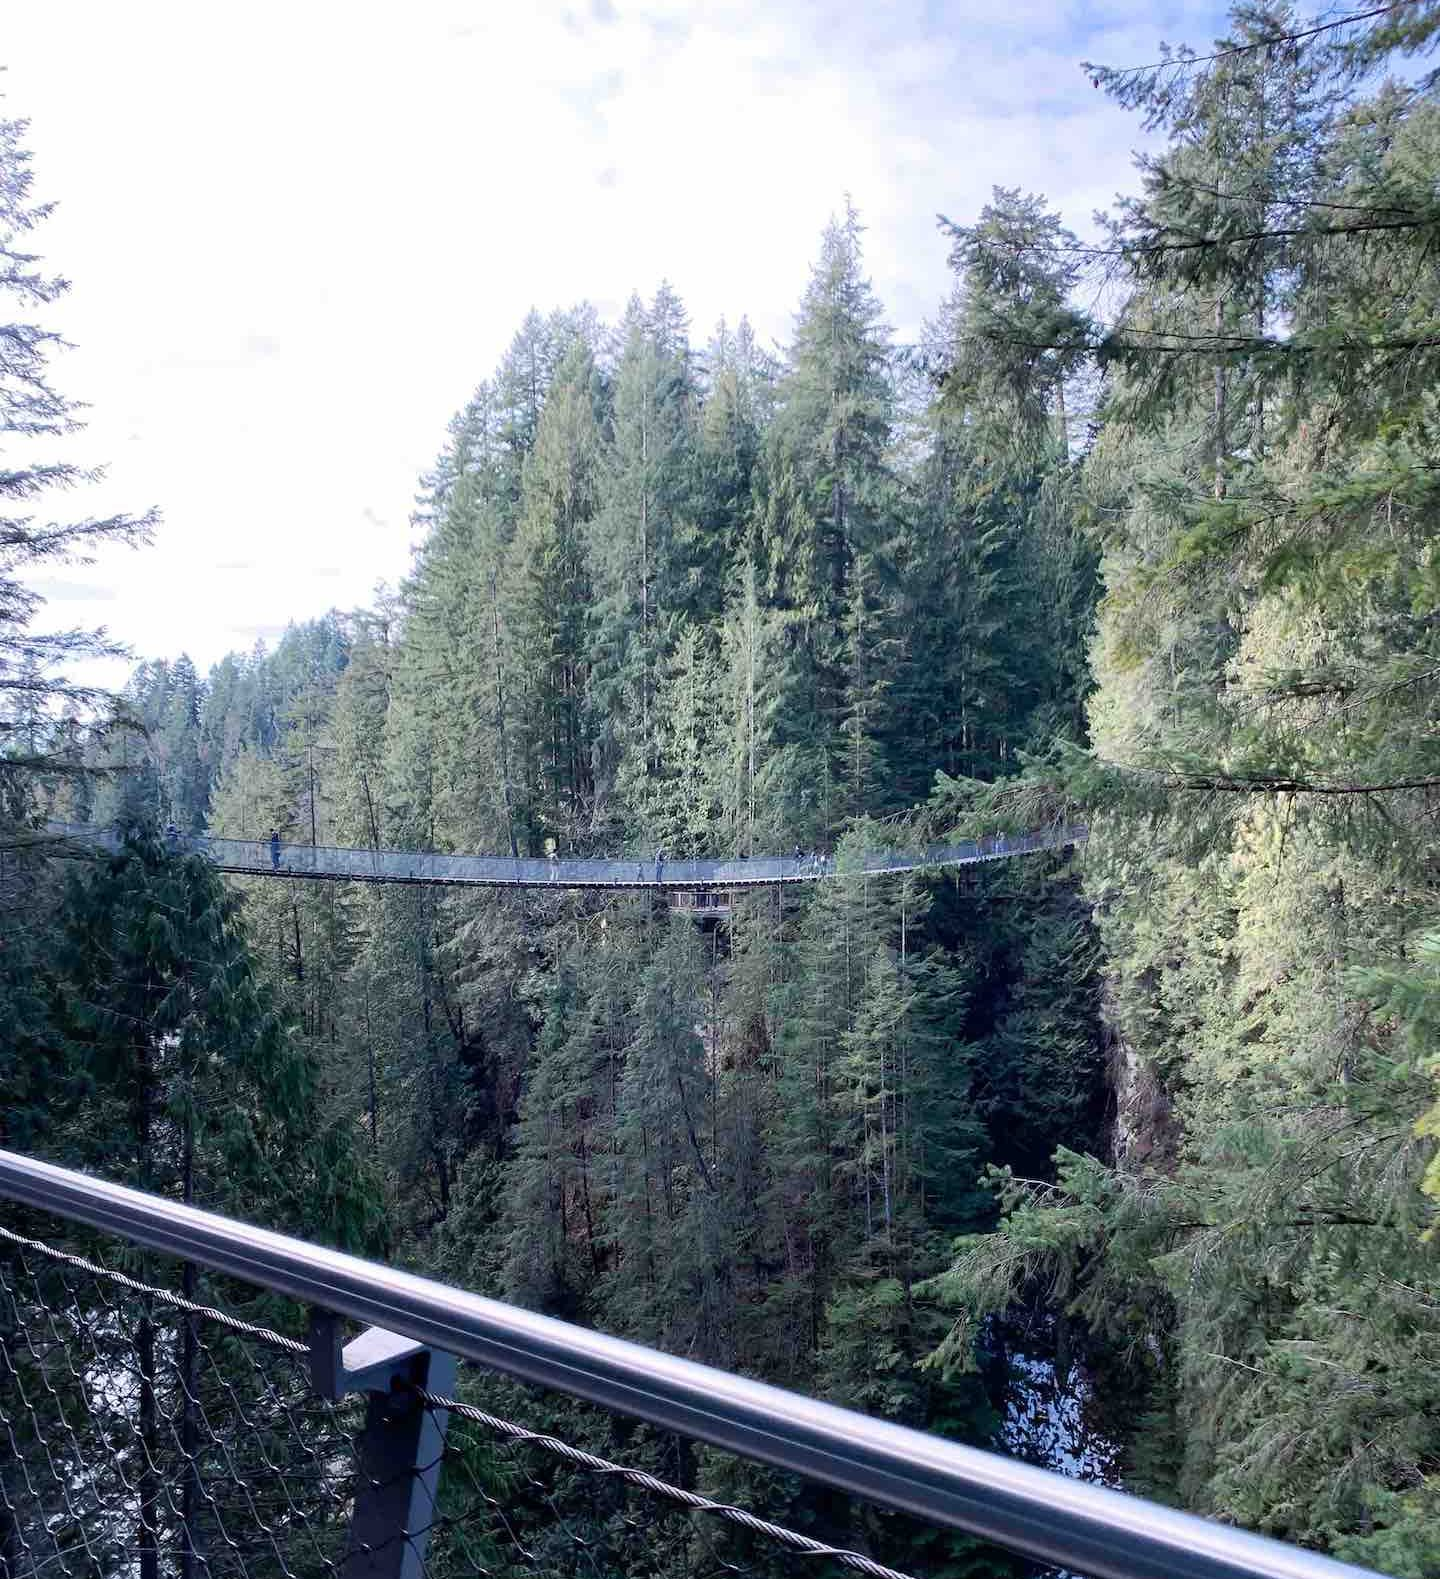 photo of a suspension bridge with a forest of pine trees behind it